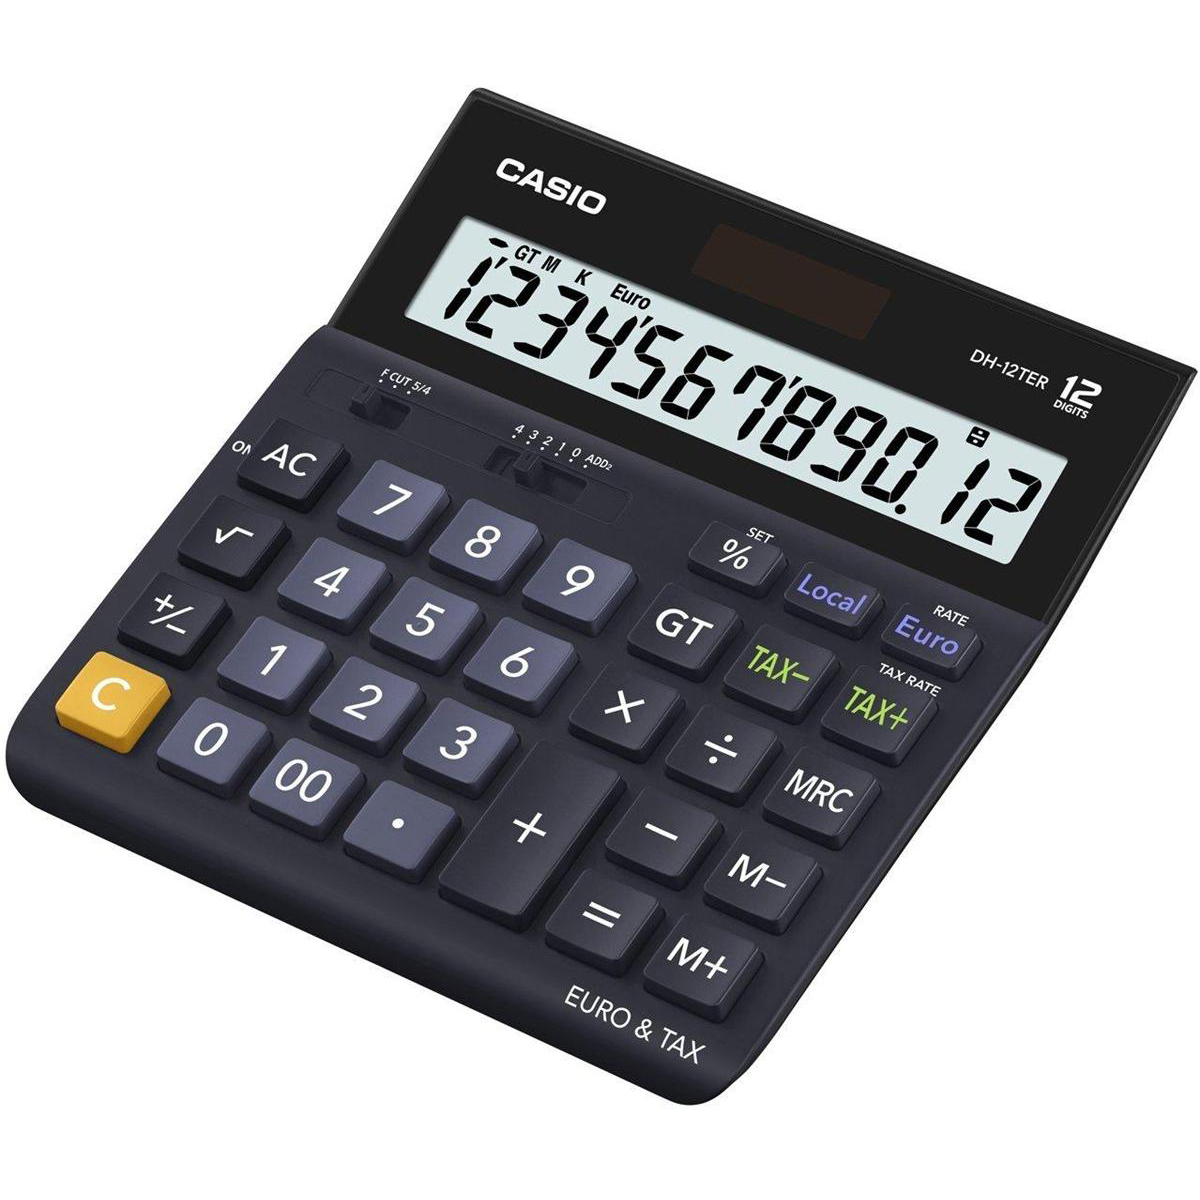 Desktop Calculator Casio Desktop Calculator 12 Digit 4 Key Memory Battery/Solar Power 151x32x158mm Black Ref DH-12TER